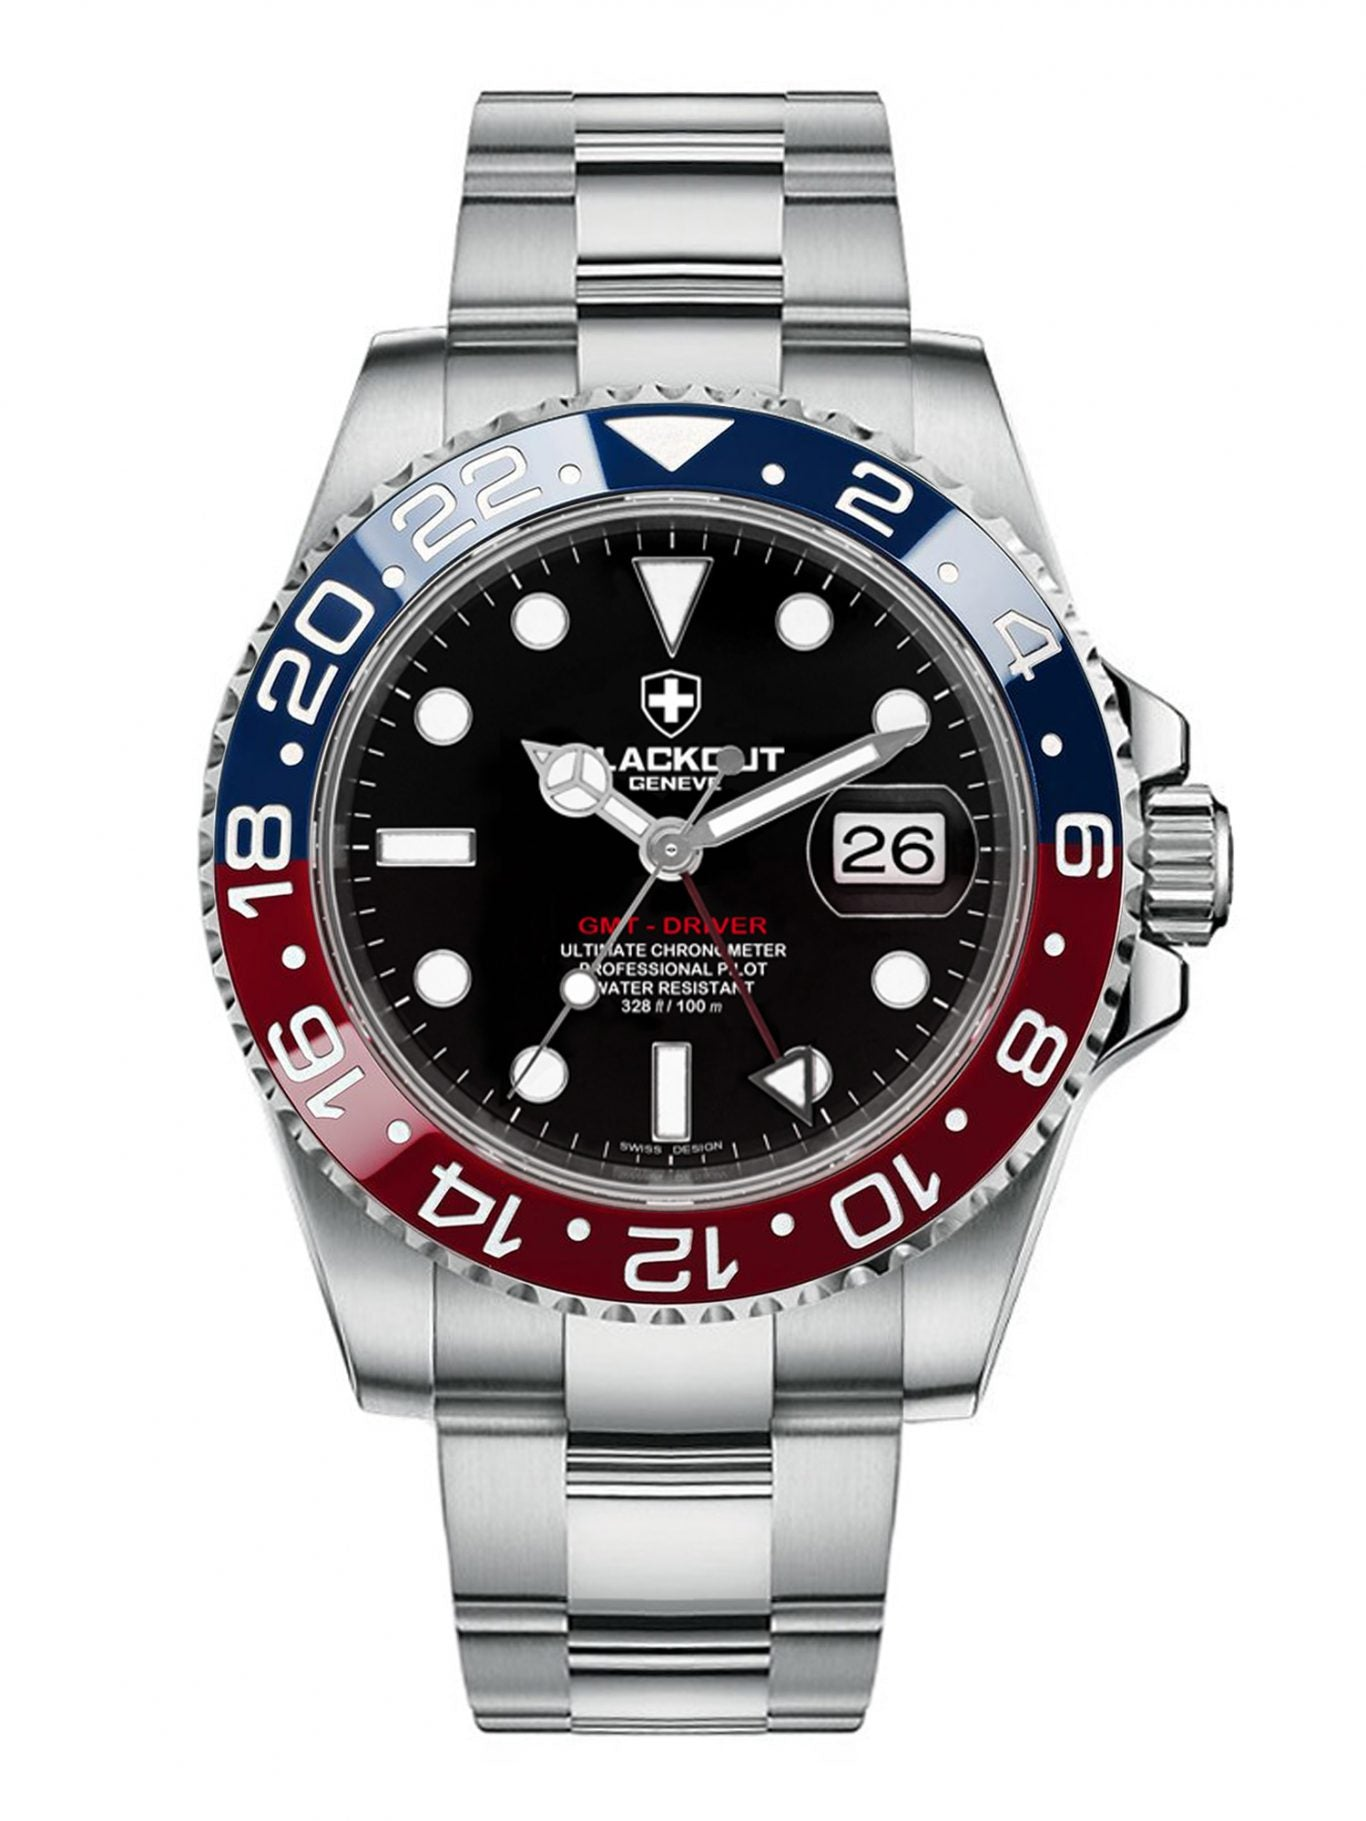 GMT DRIVER H7-6 AUTOMATIC